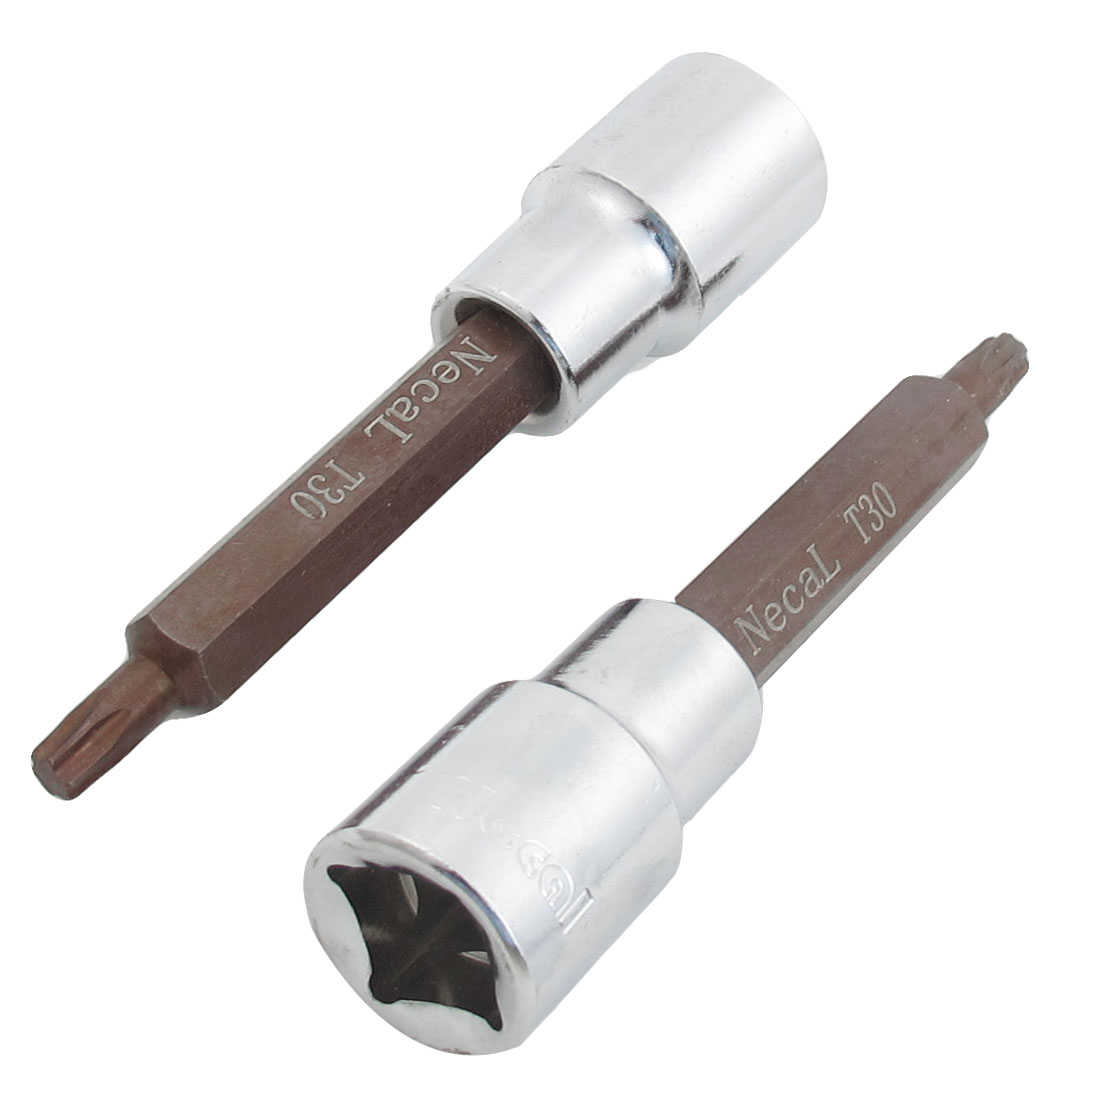 Unique Bargains 2 x Six Point T30 3/14' Handle Screwdriver Inserted 1/2' Square Drive Socket